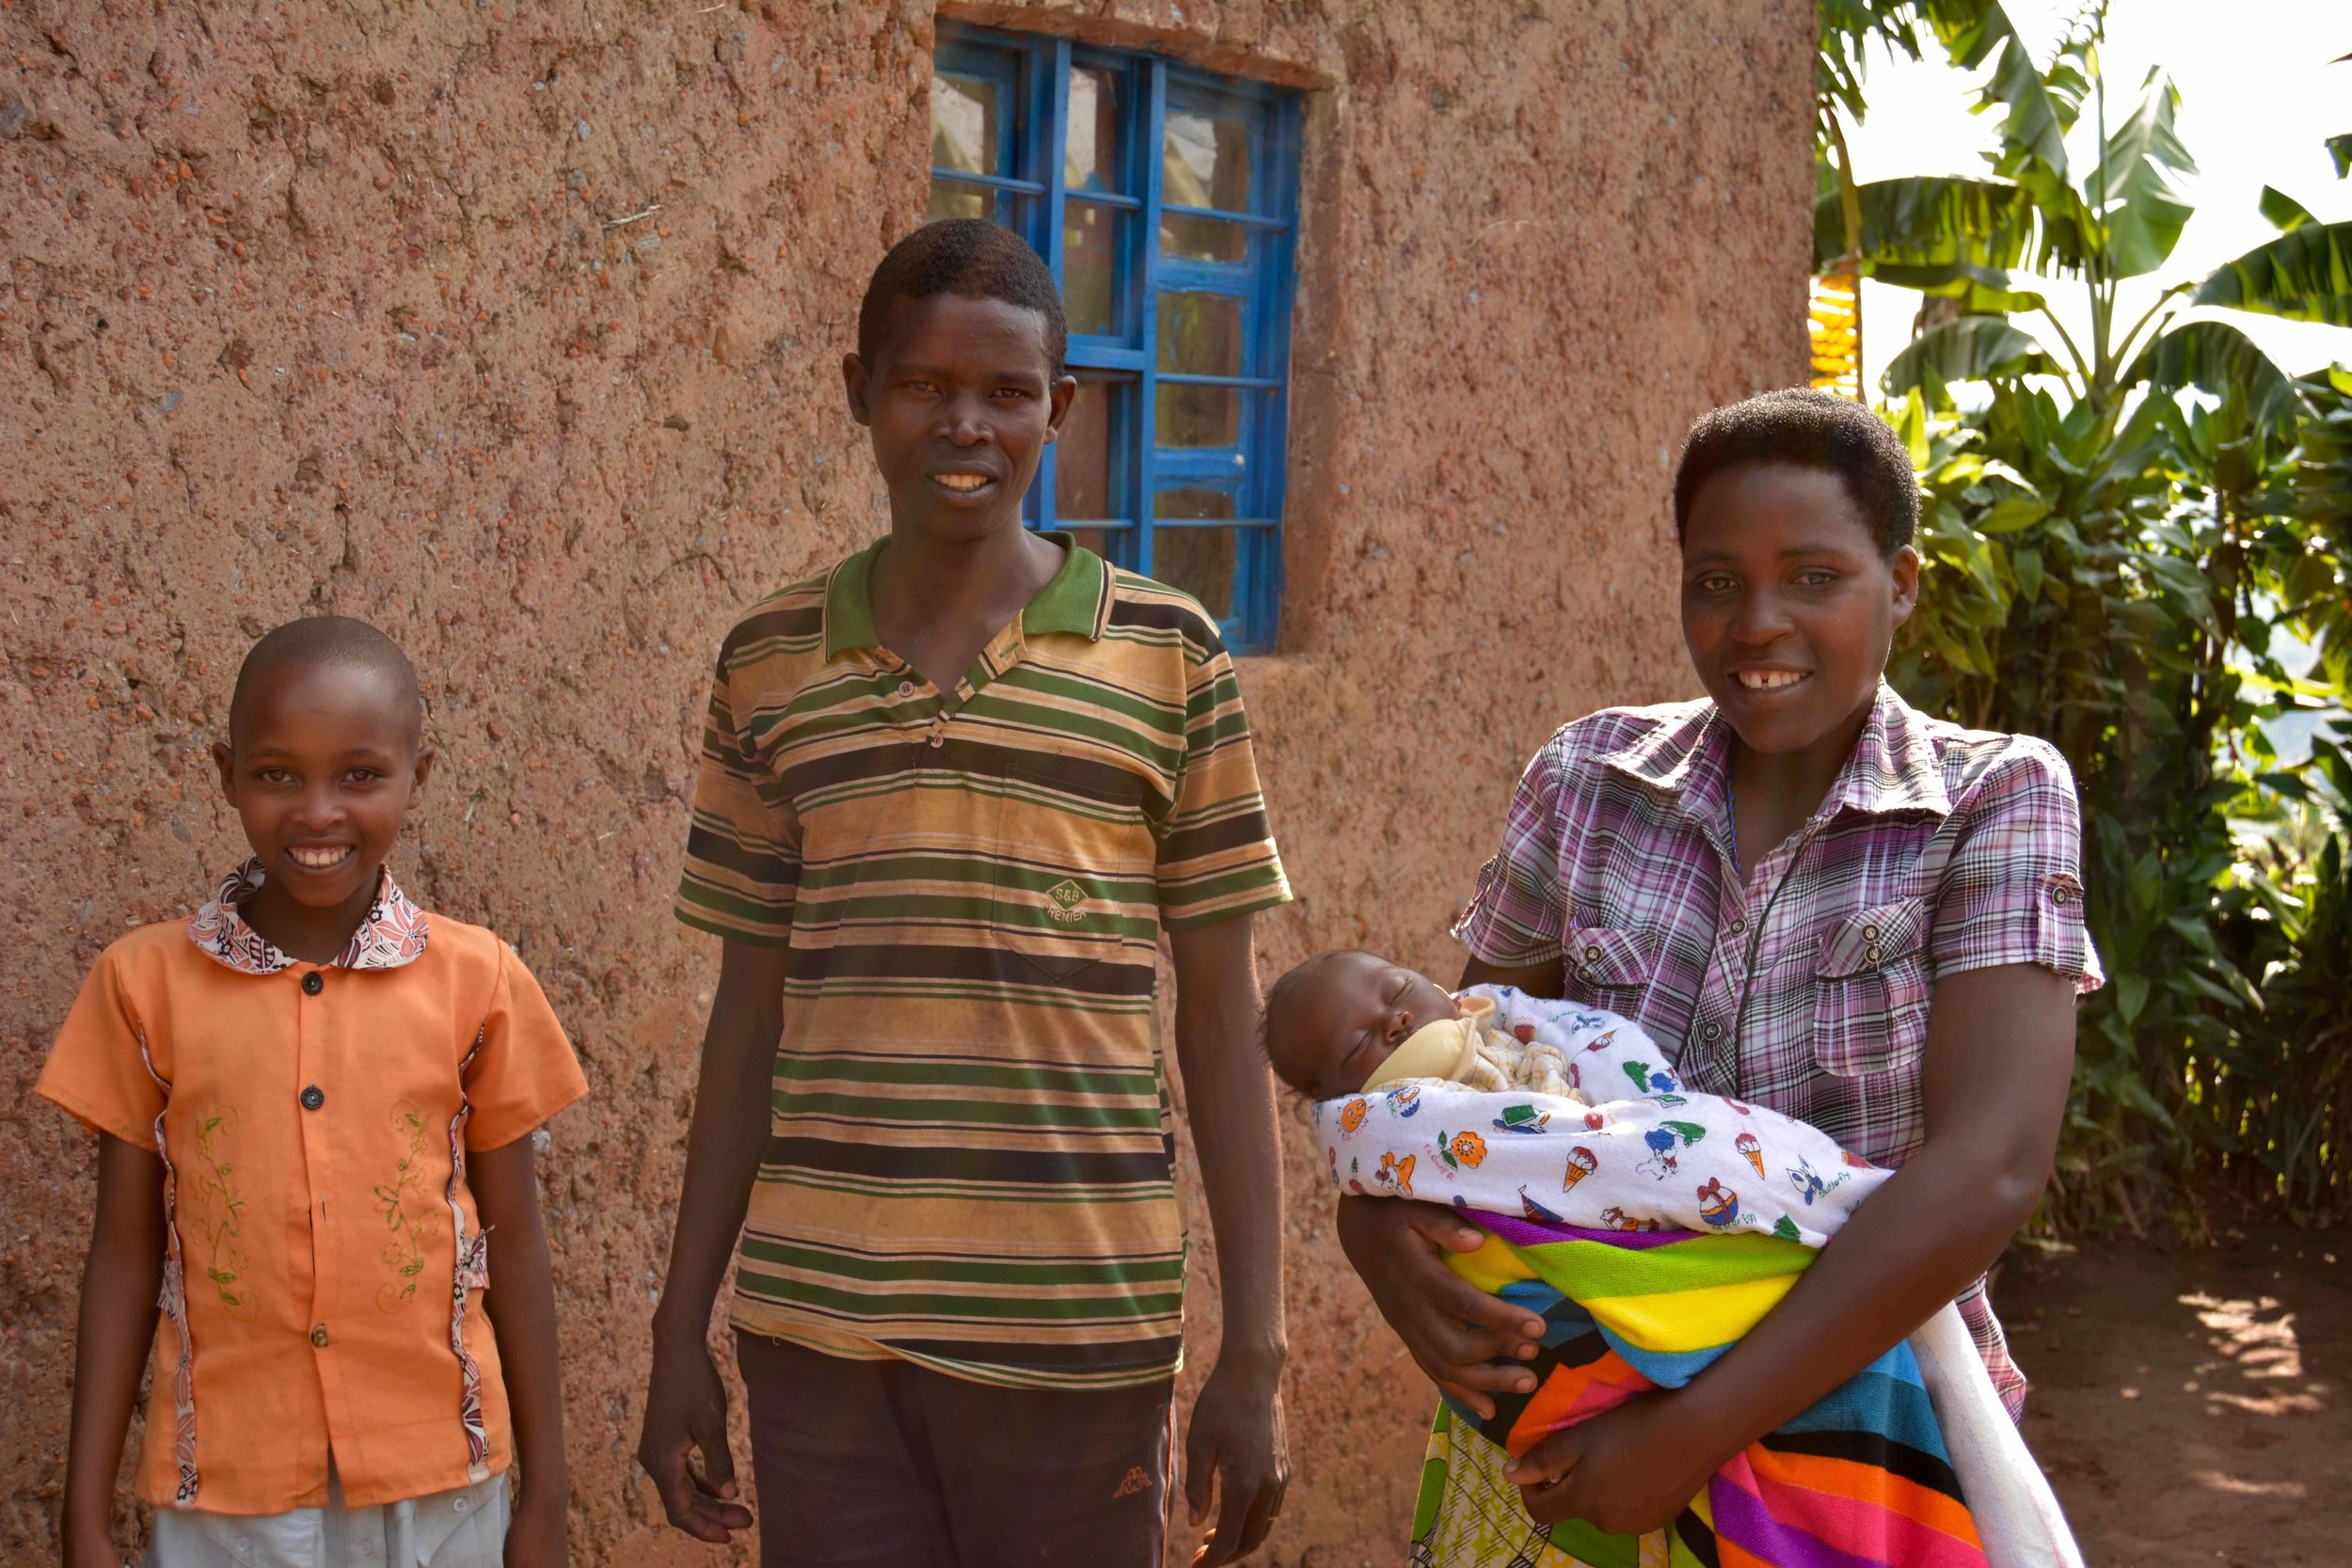 Claudine poses with her family outside their home in Bumbogo.